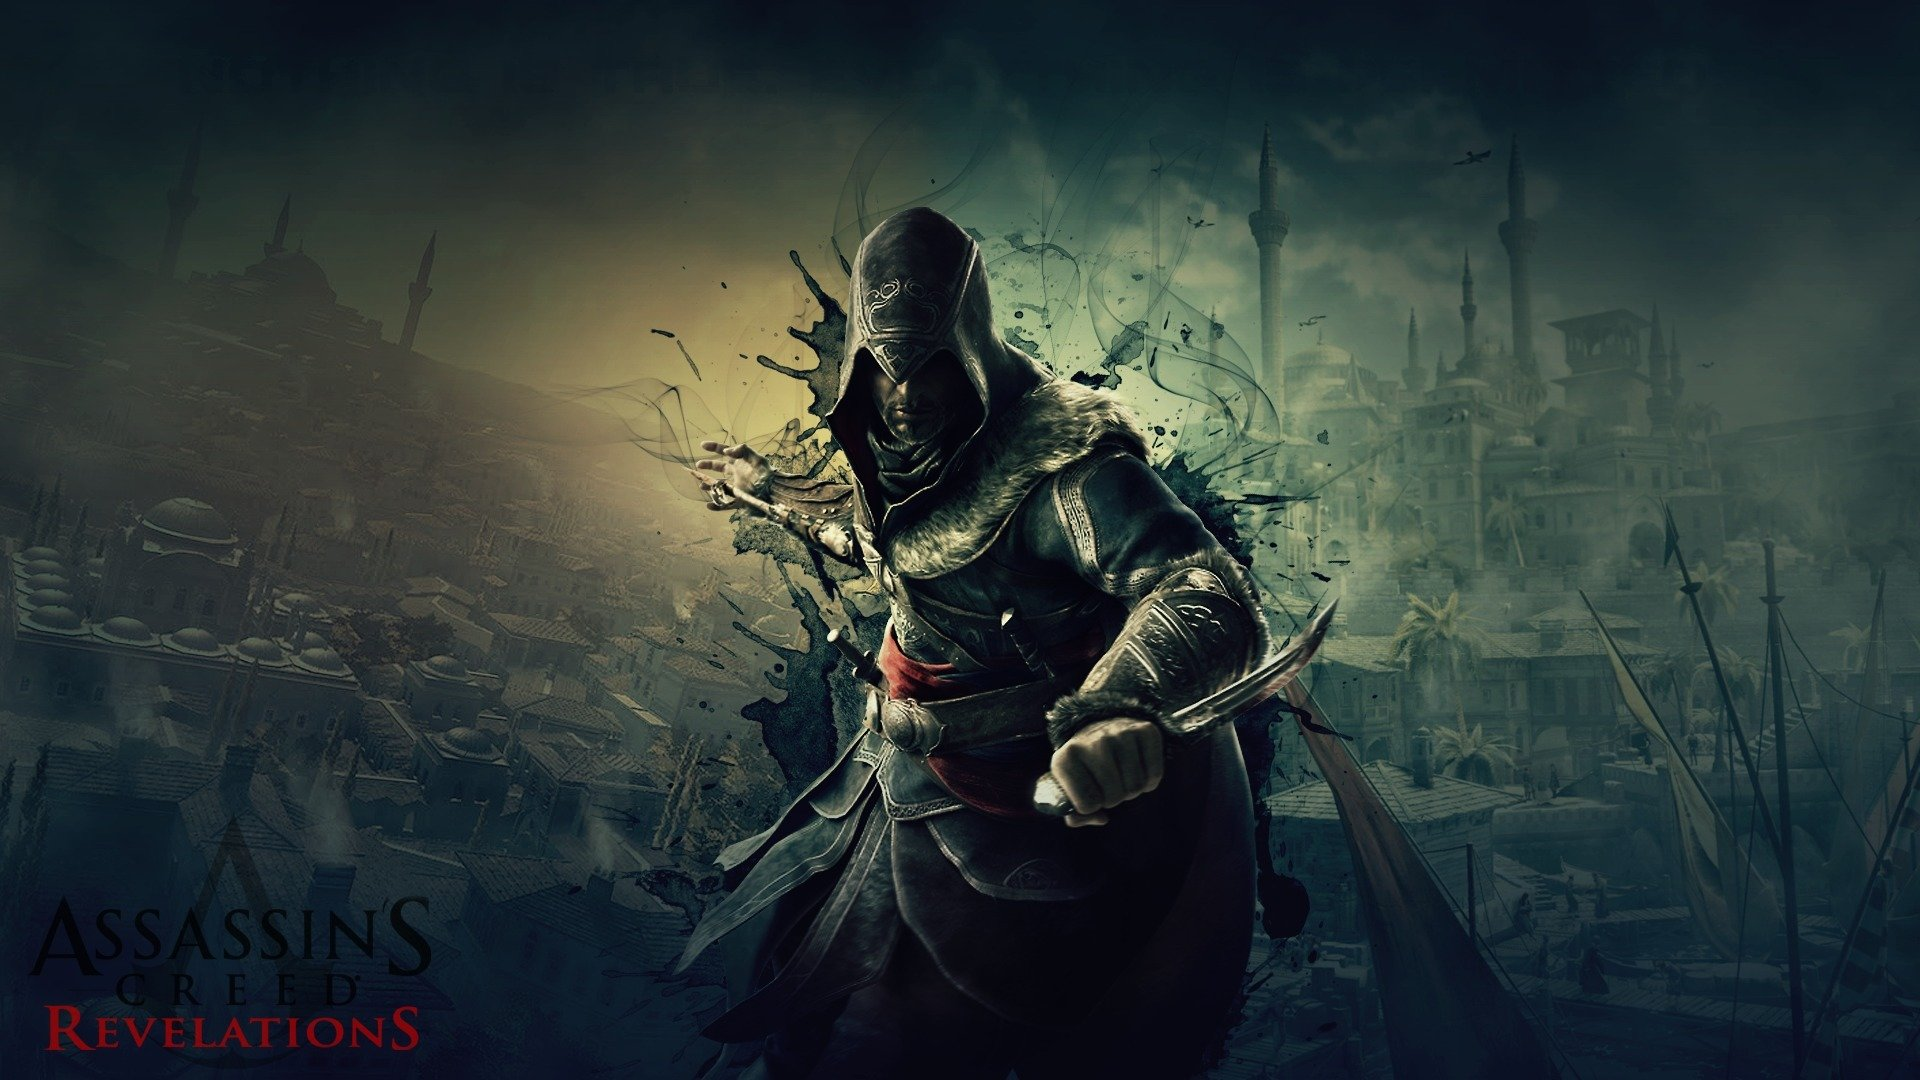 Assassin S Creed Revelations Wallpapers 1920x1080 Full Hd 1080p